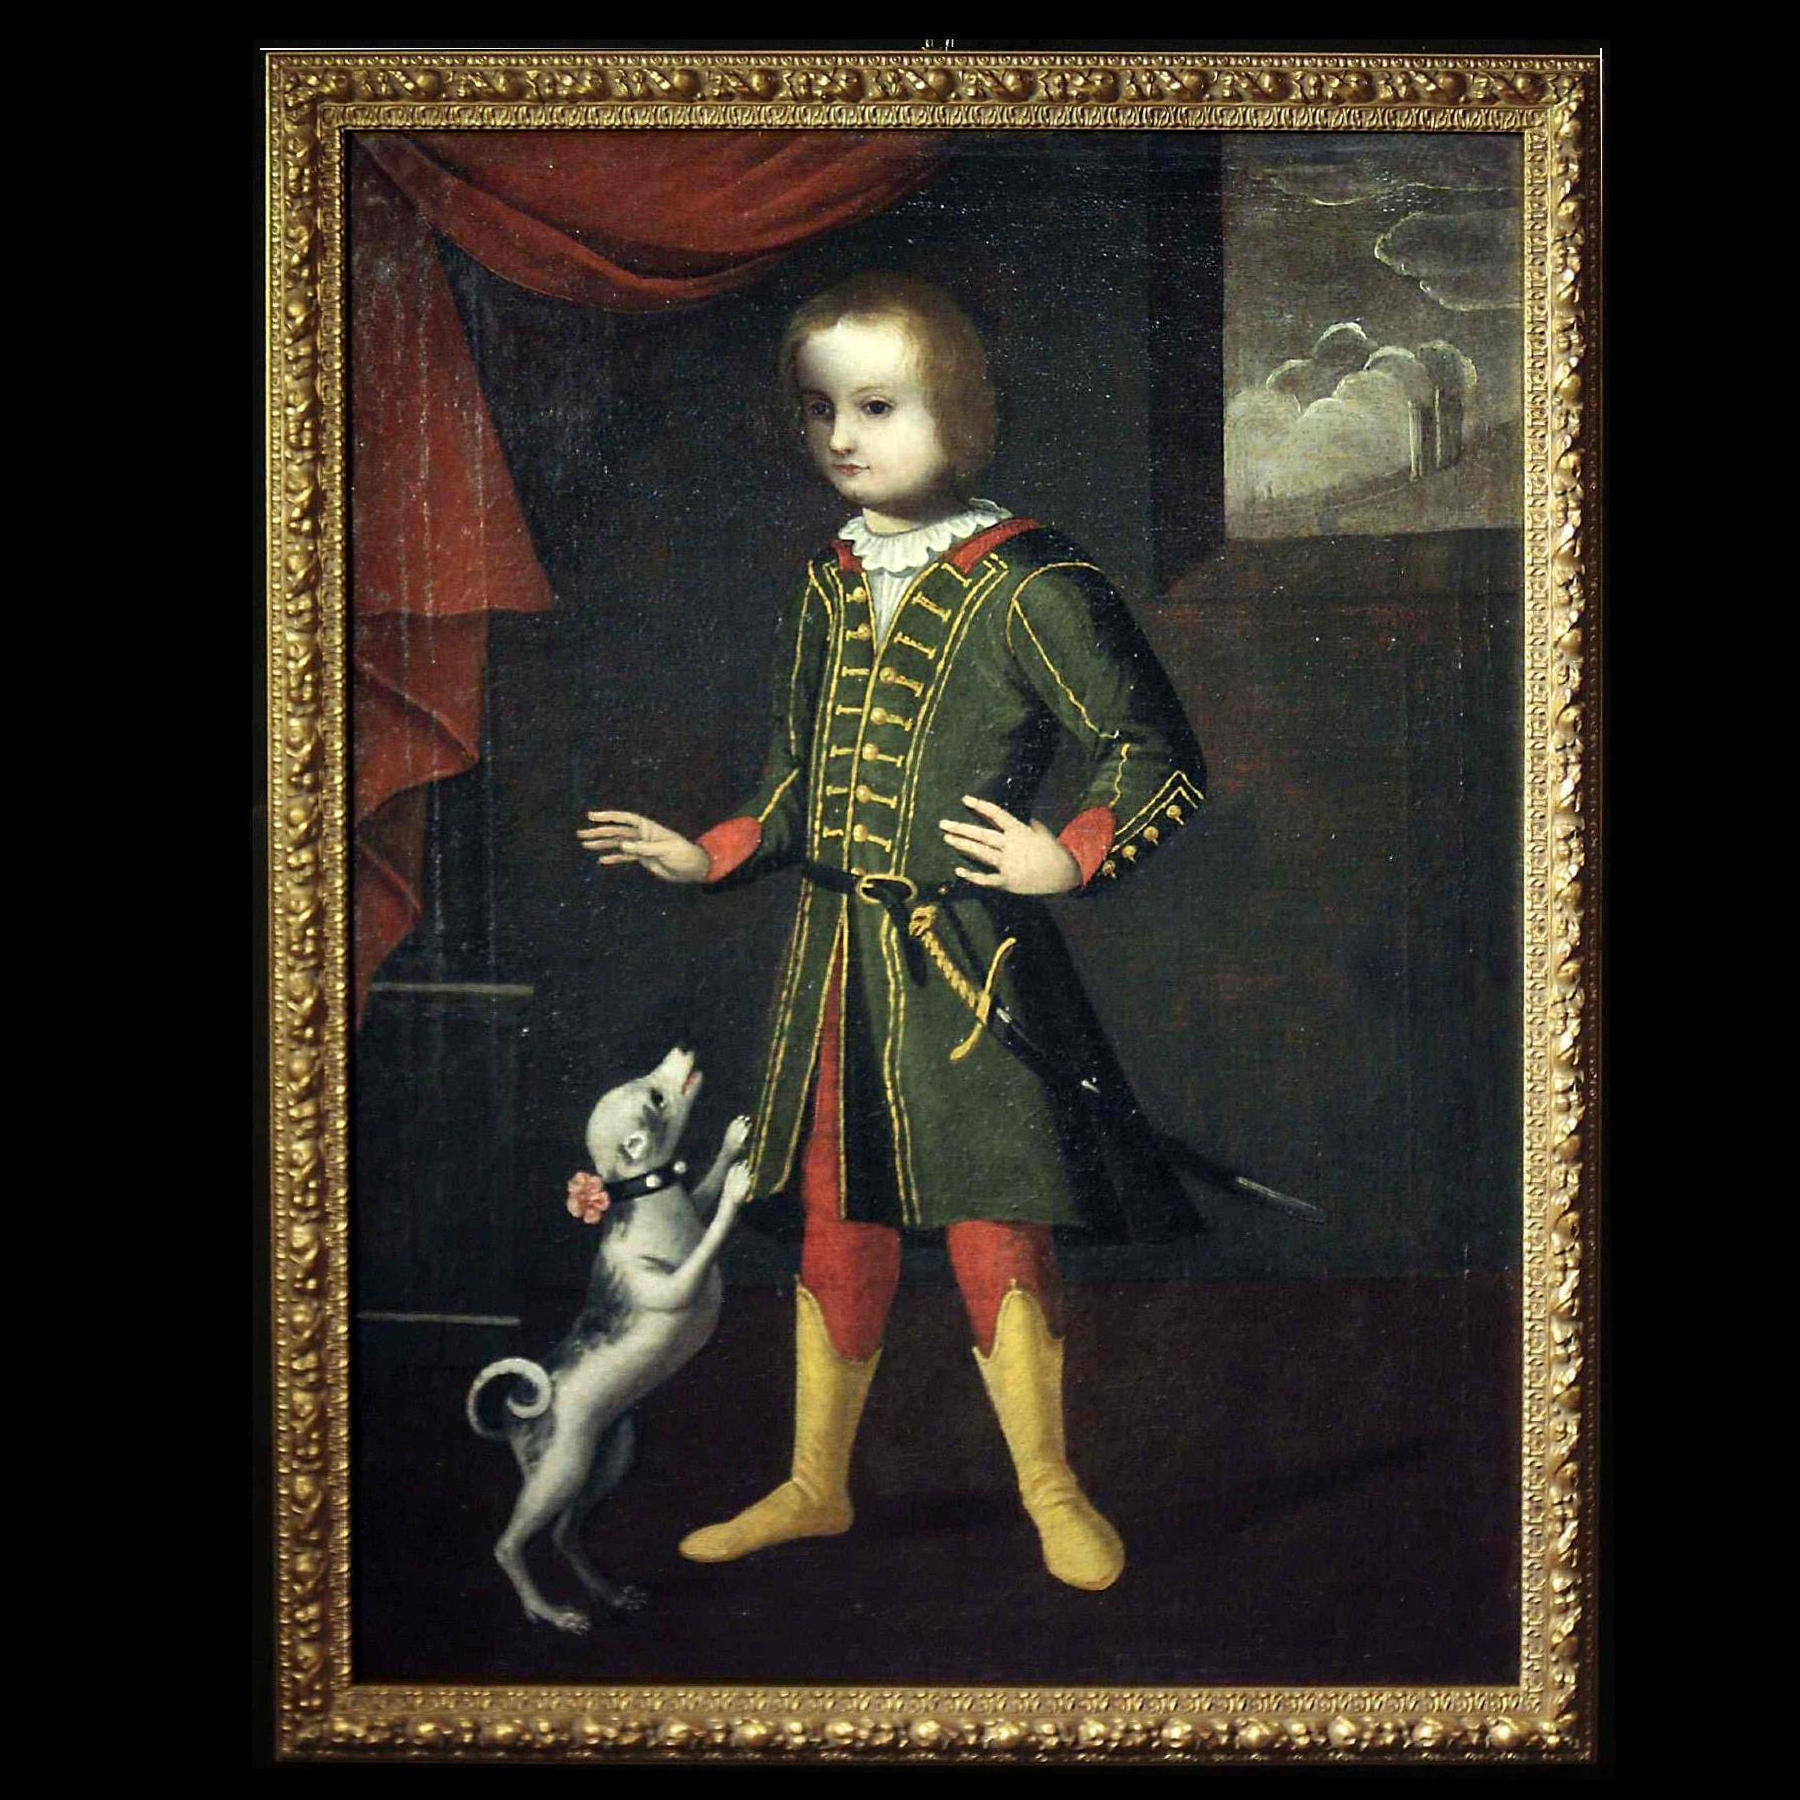 Portrait of a child with a dog, Veneto, 17th century